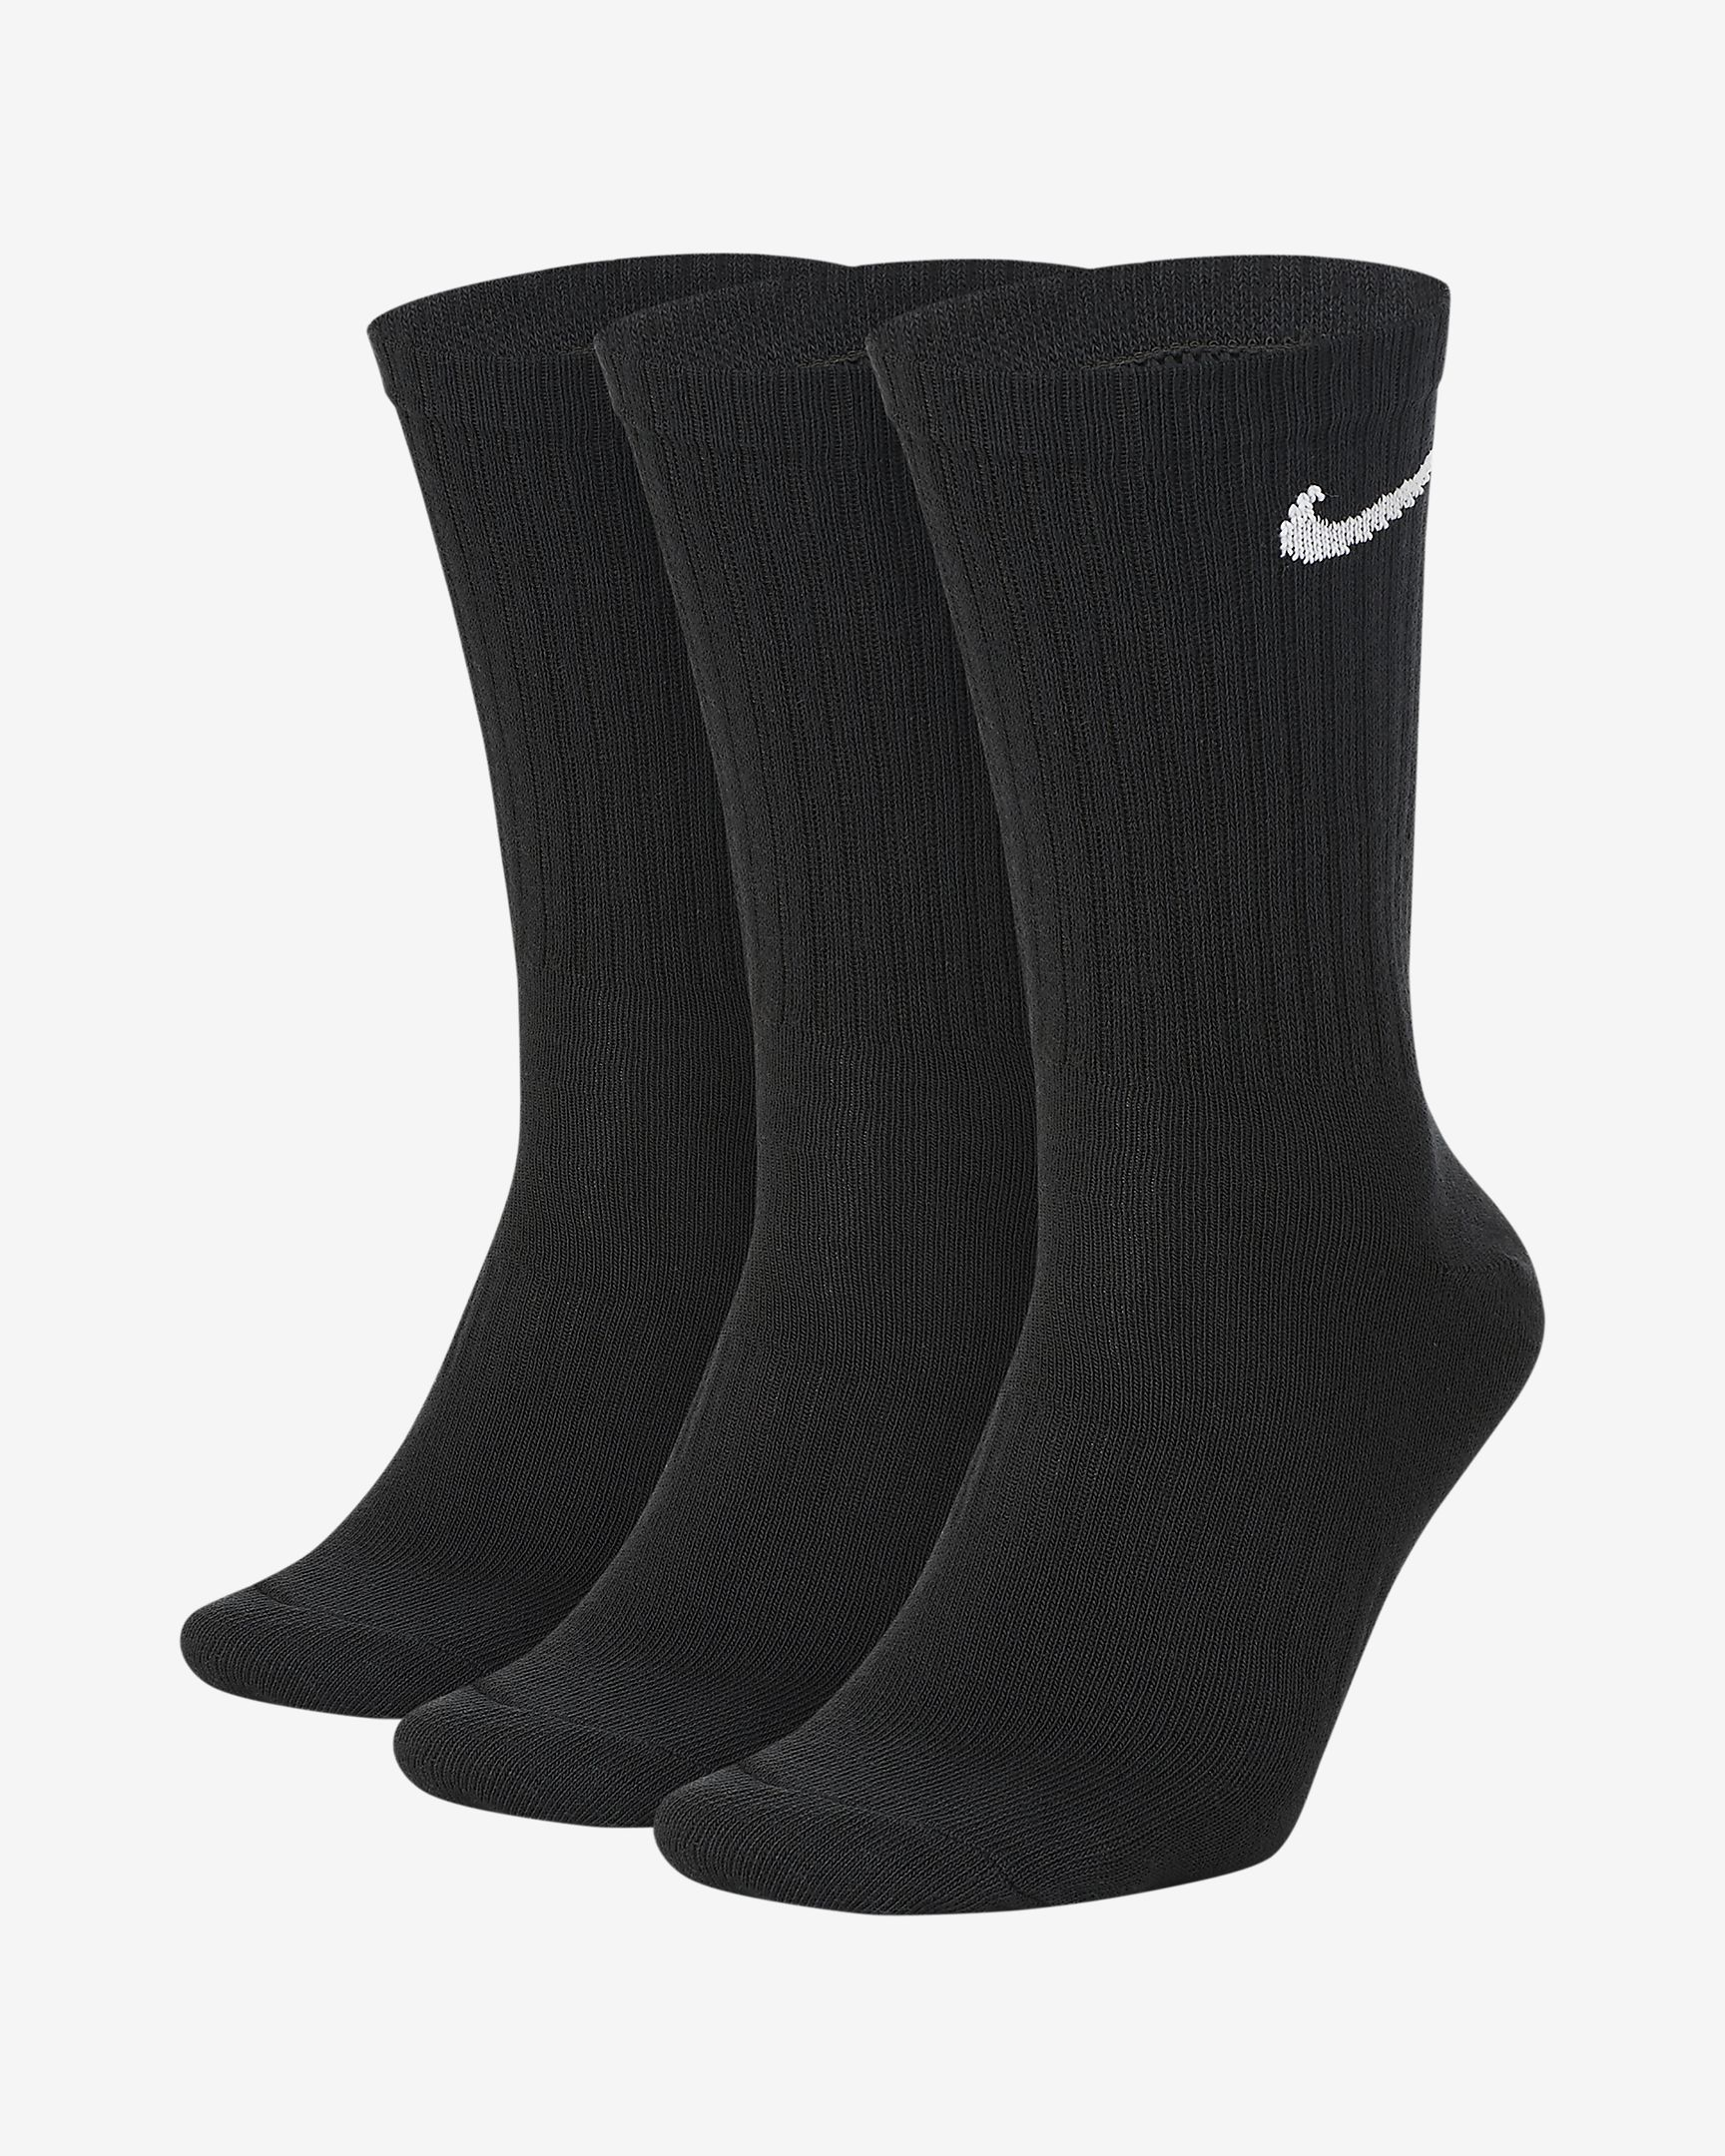 Nike Everyday Lightweight Crew Sock - Black/White SP-ApparelSocks-Unisex Nike